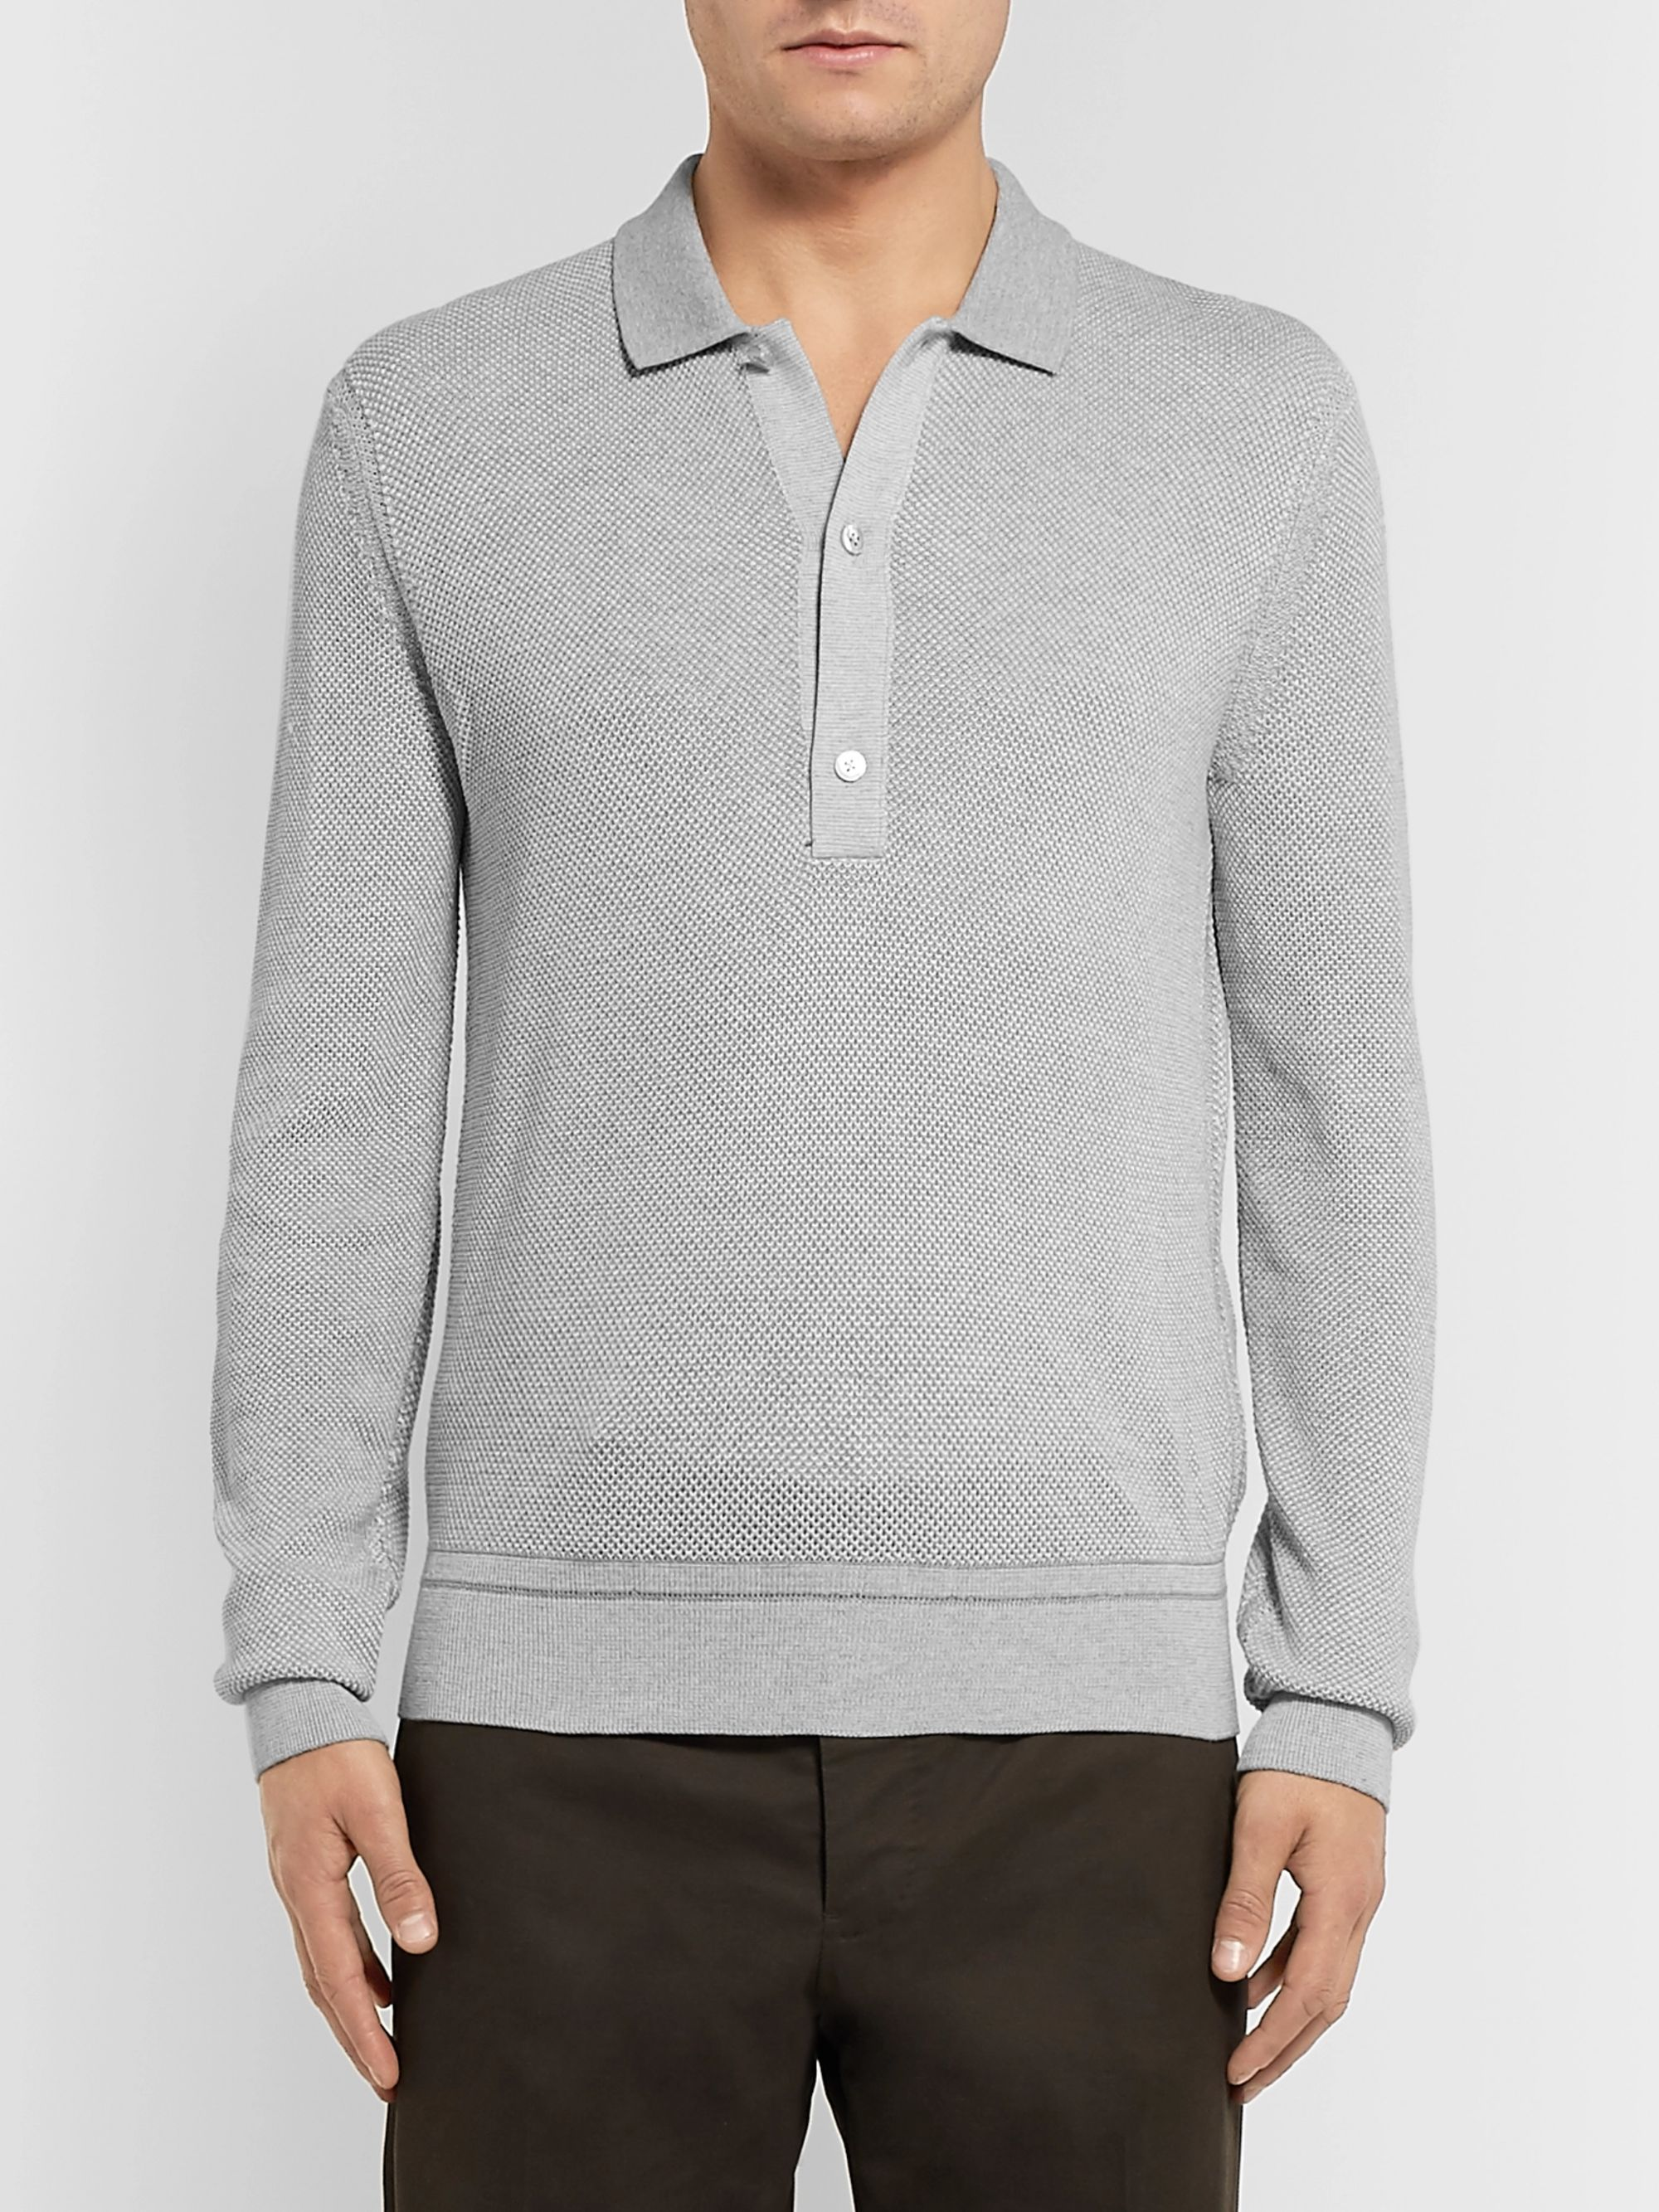 TOM FORD Silk and Cotton-Blend Piqué Polo Shirt